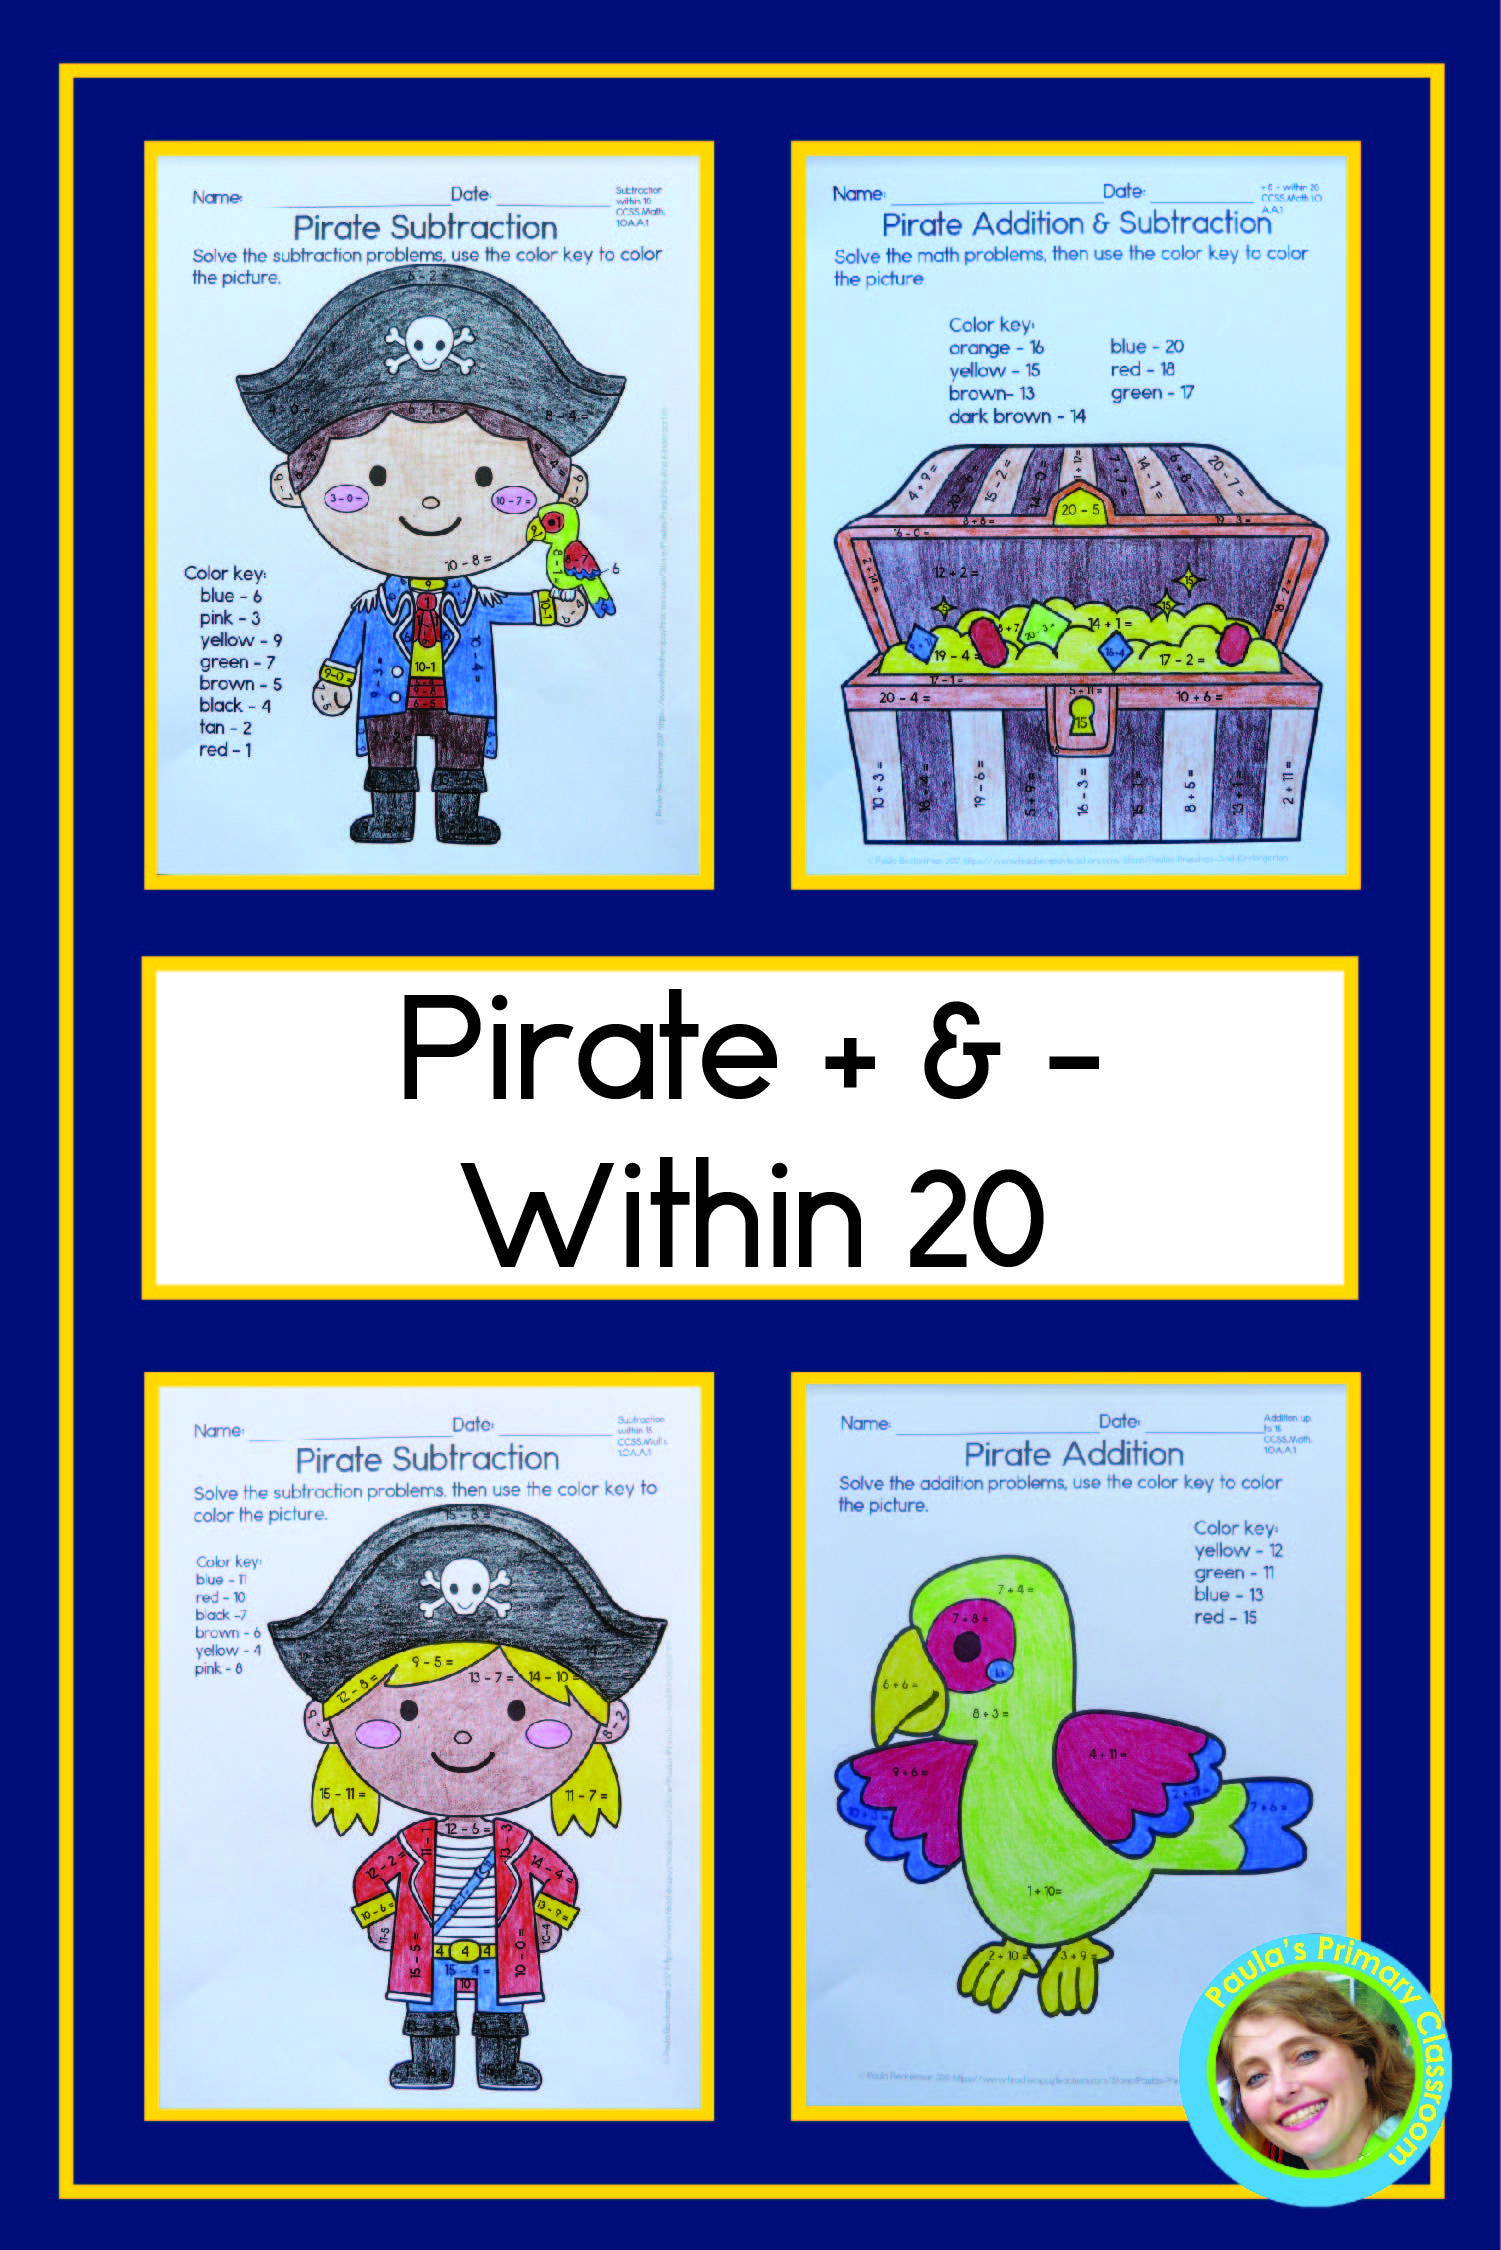 Pirate Addition And Subtraction Within 20 No Prep Worksheets For Math Fac Addition And Subtraction Practice Early Elementary Resources Addition And Subtraction [ 2250 x 1501 Pixel ]